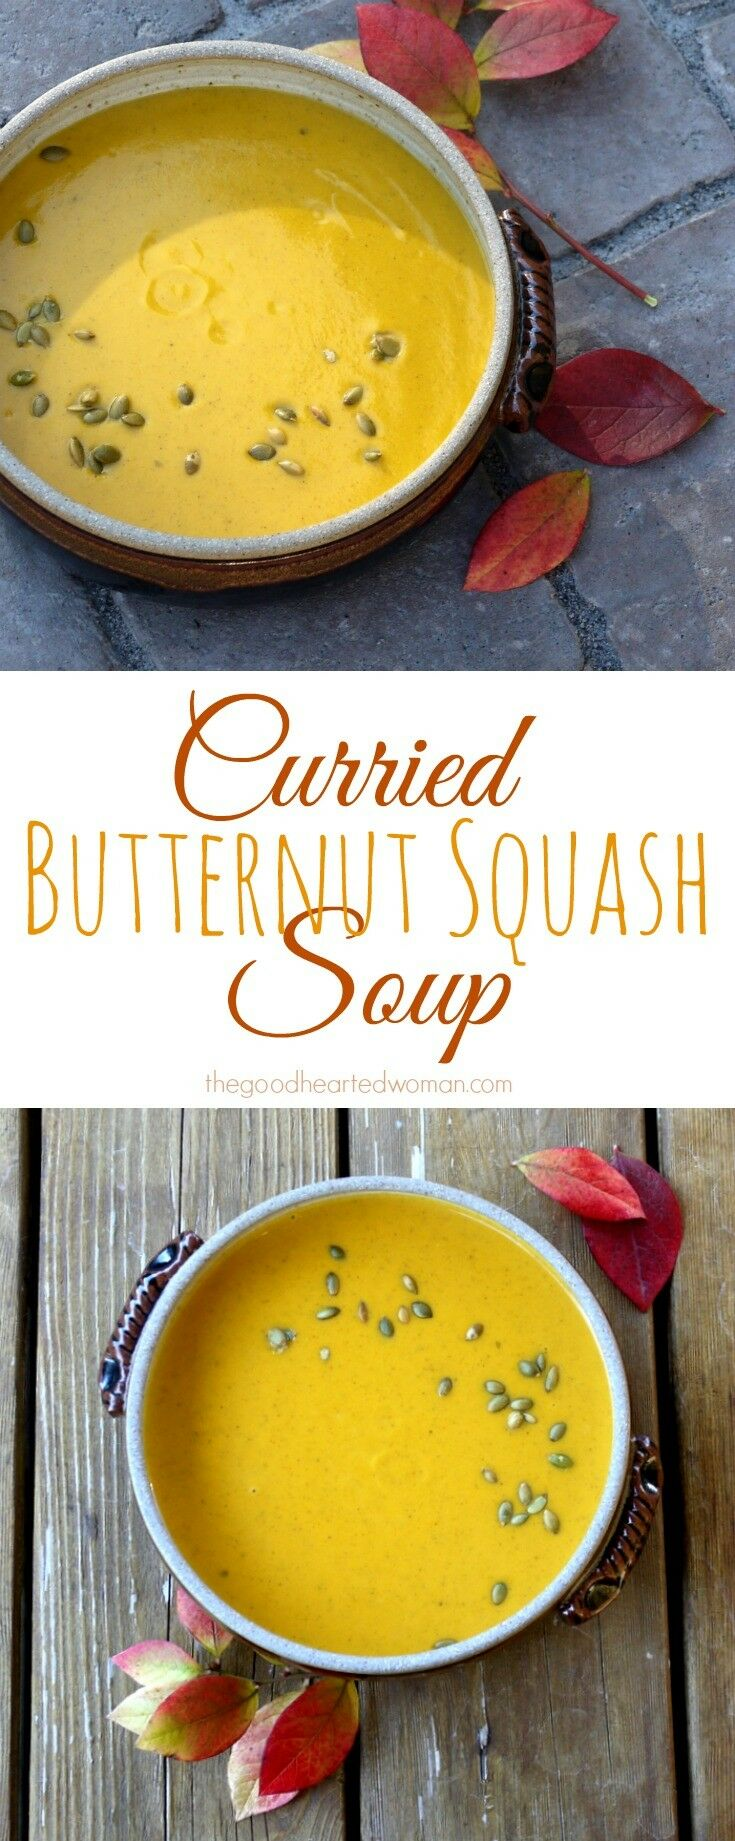 Curried Butternut Squash Soup | The Good Hearted Woman